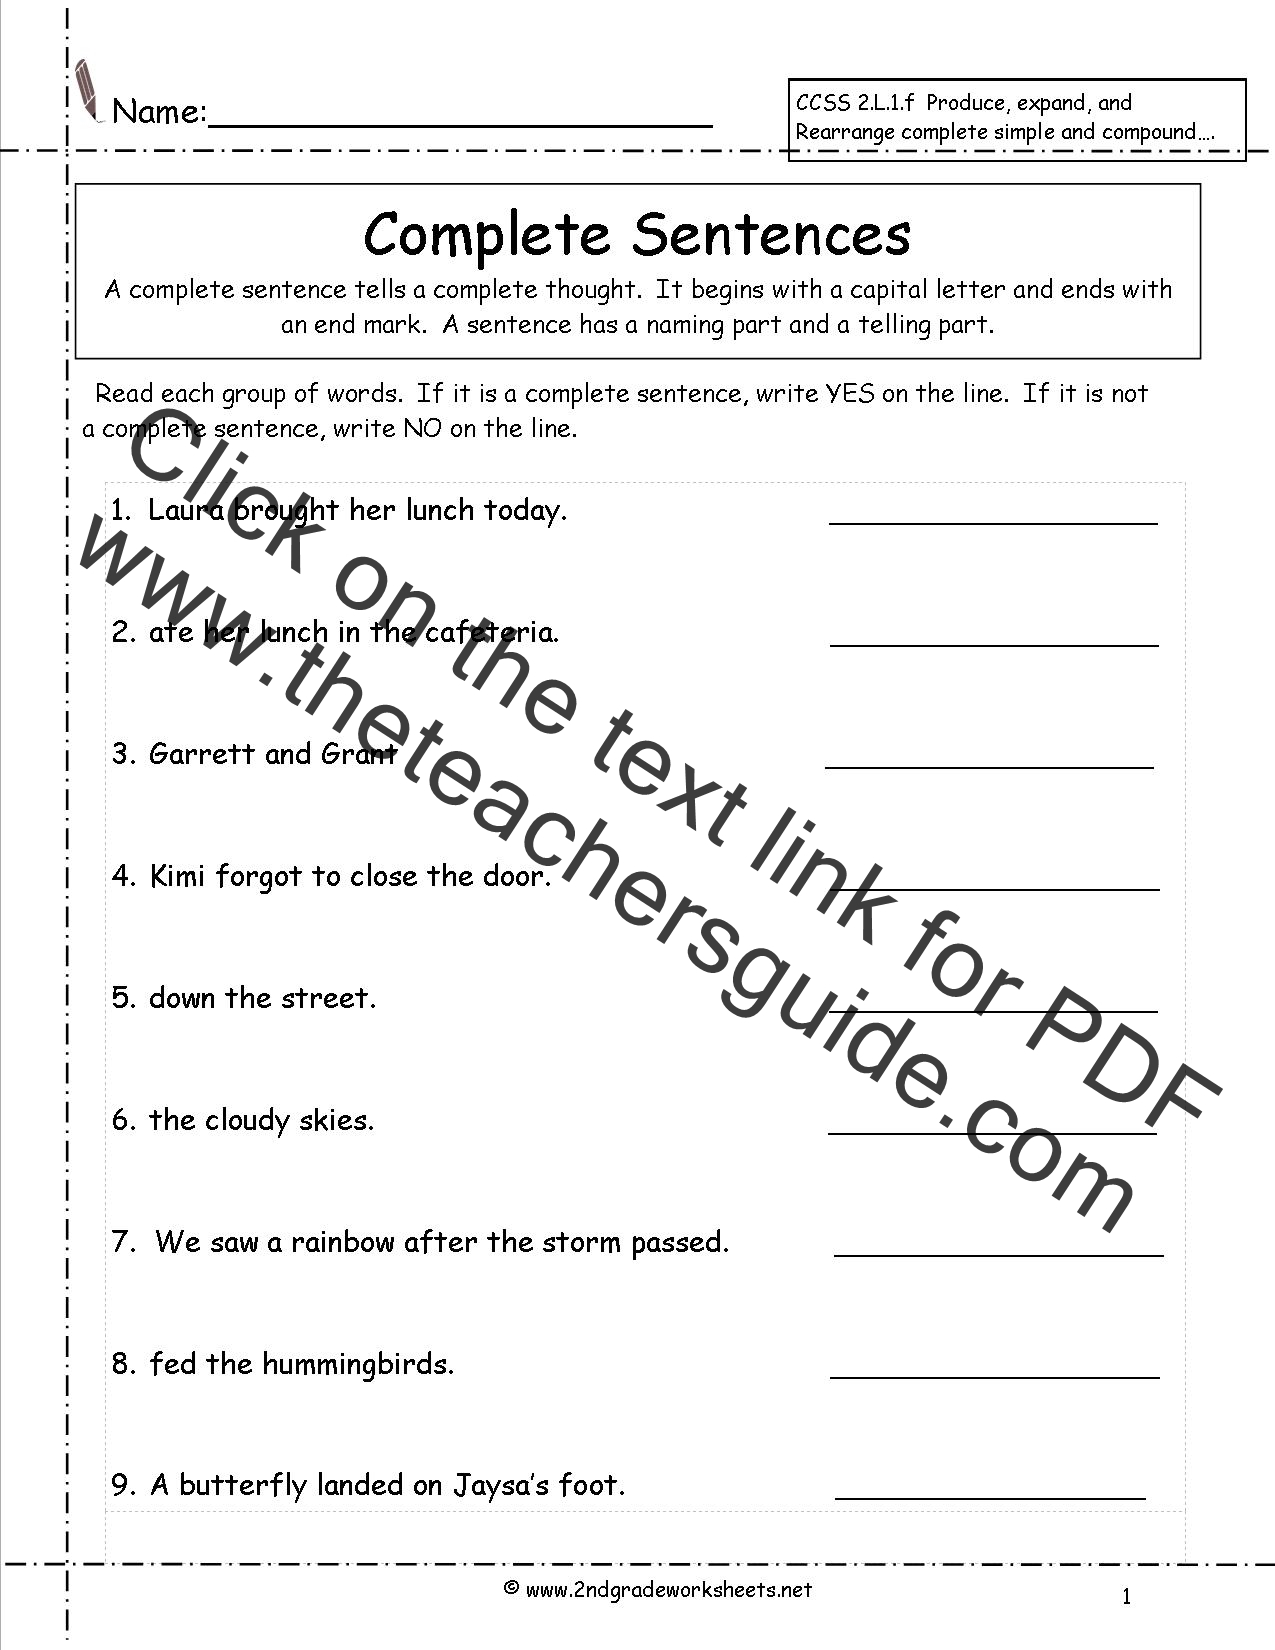 Complete Sentences Worksheets, Combining Sentences Worksheets ...